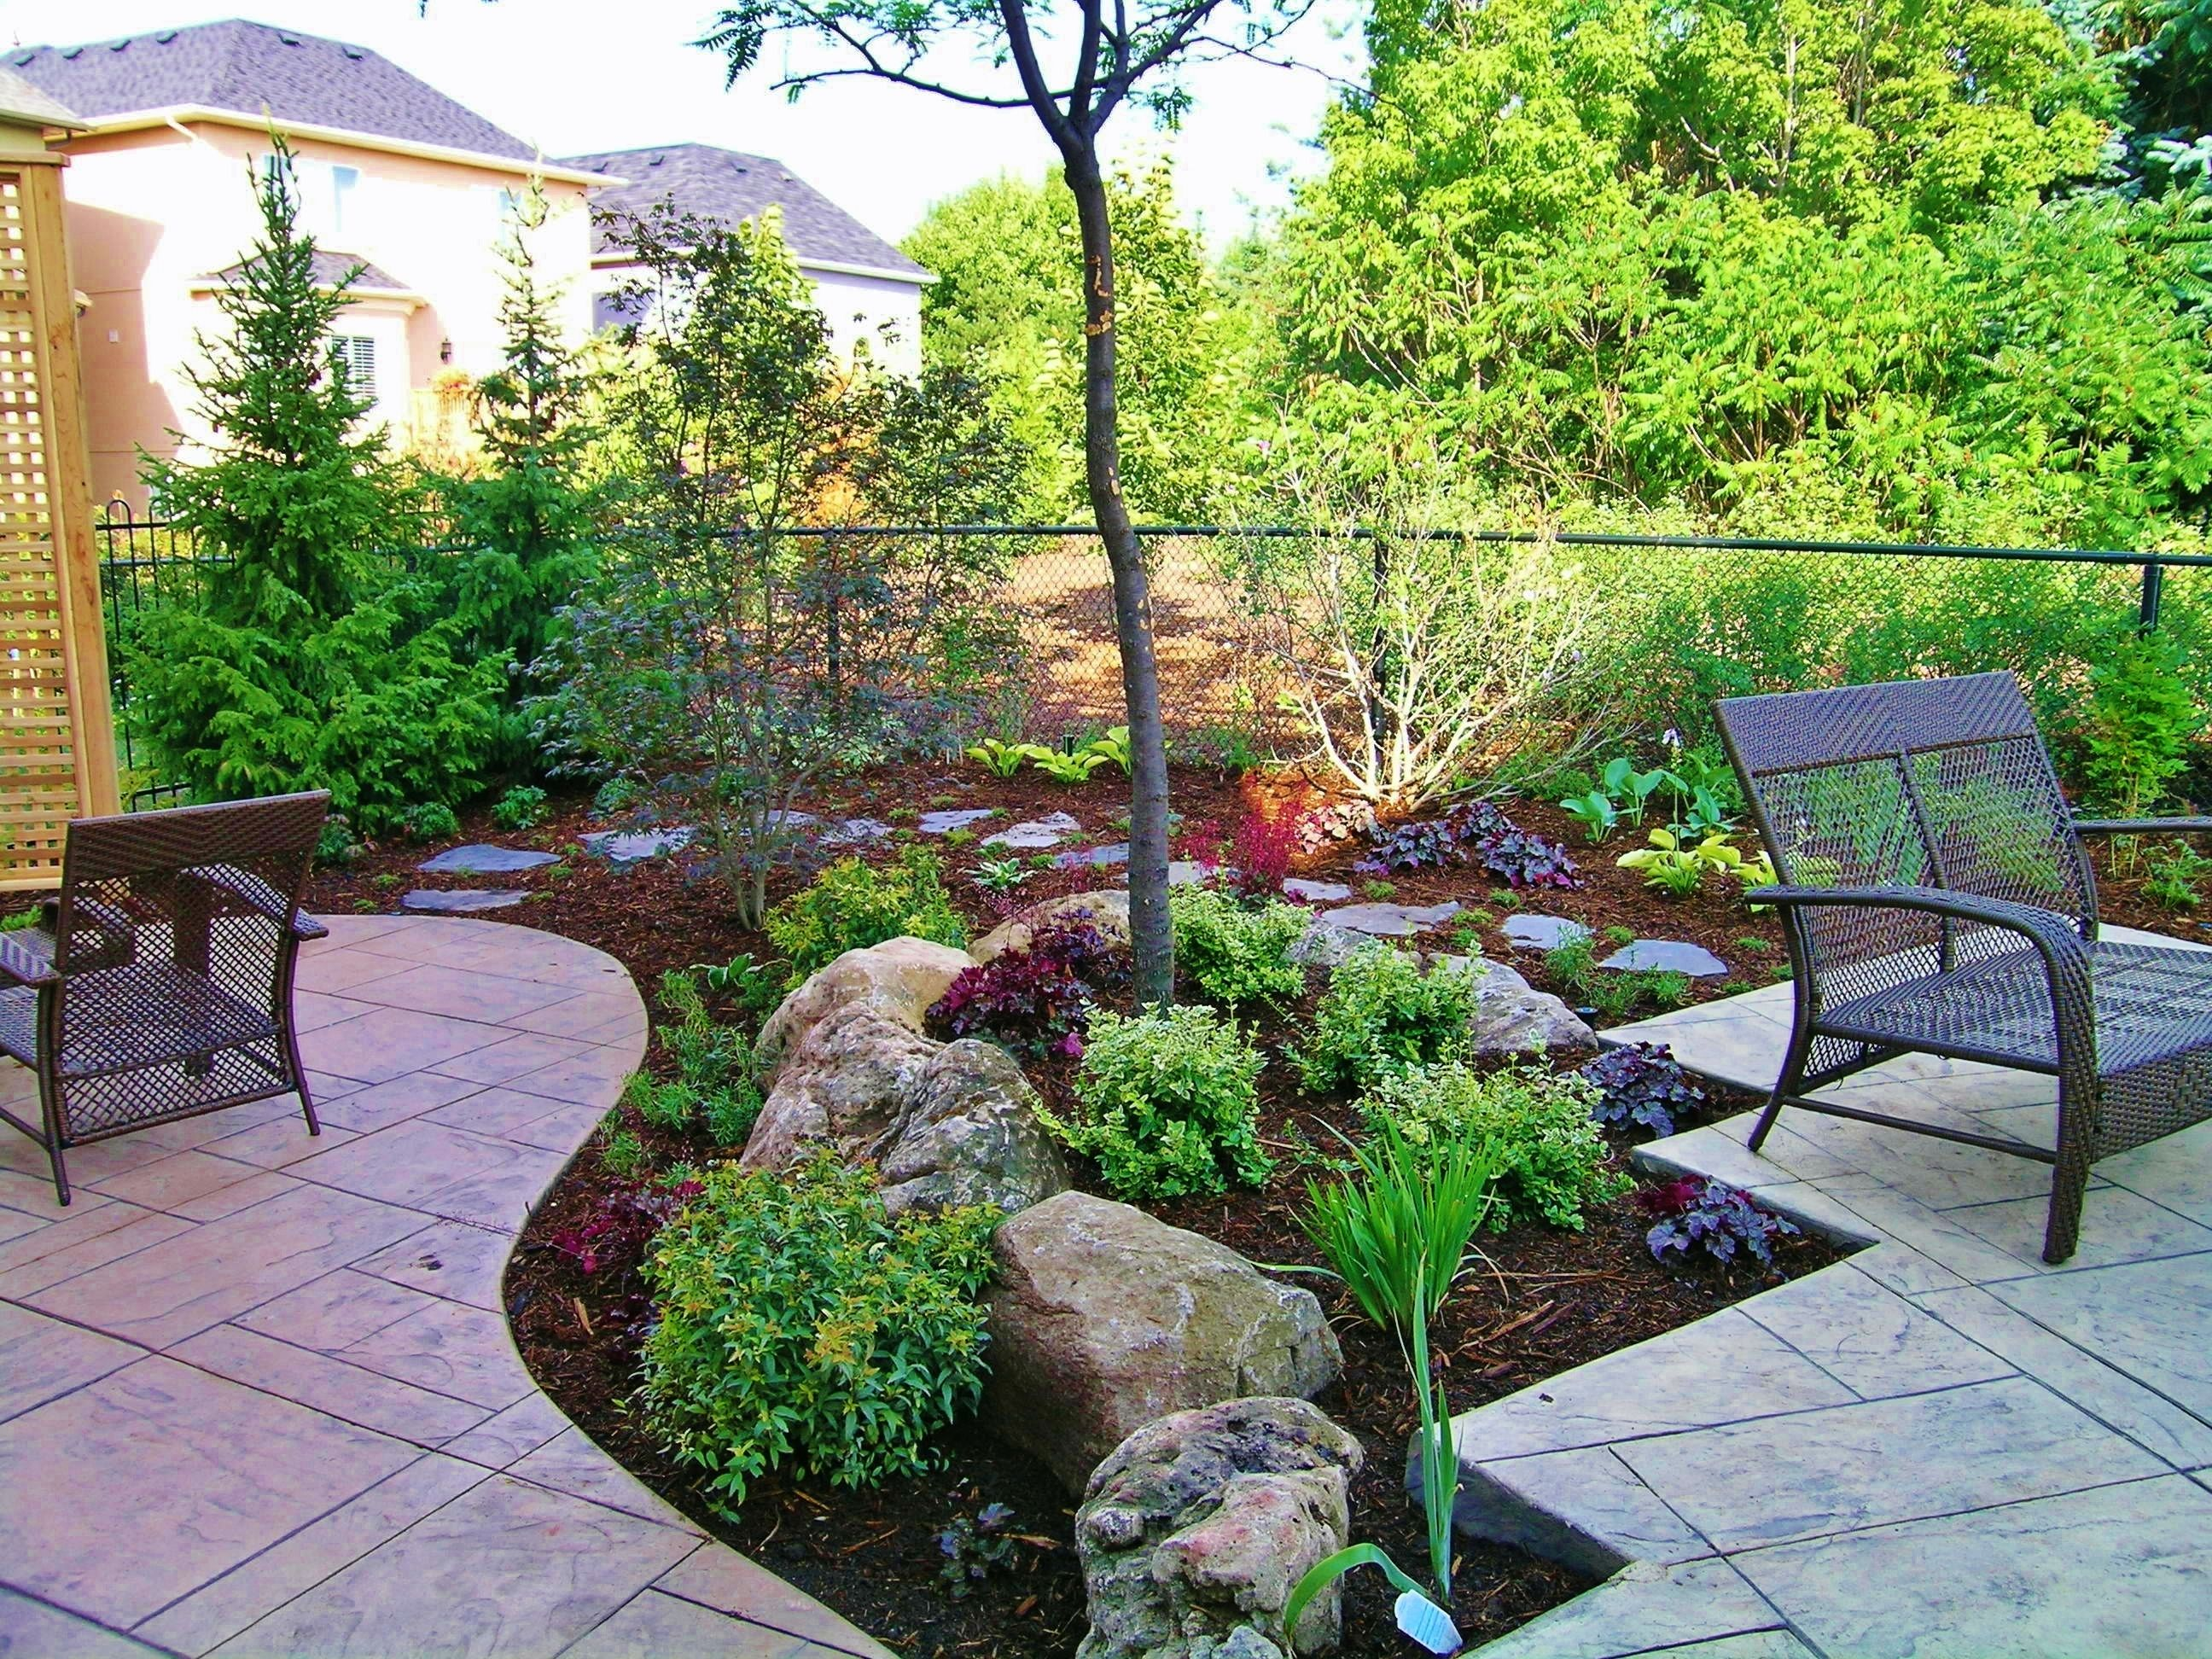 Landscaping Ideas With No Grass landscape design | Backyard without grass | Landscape Garten